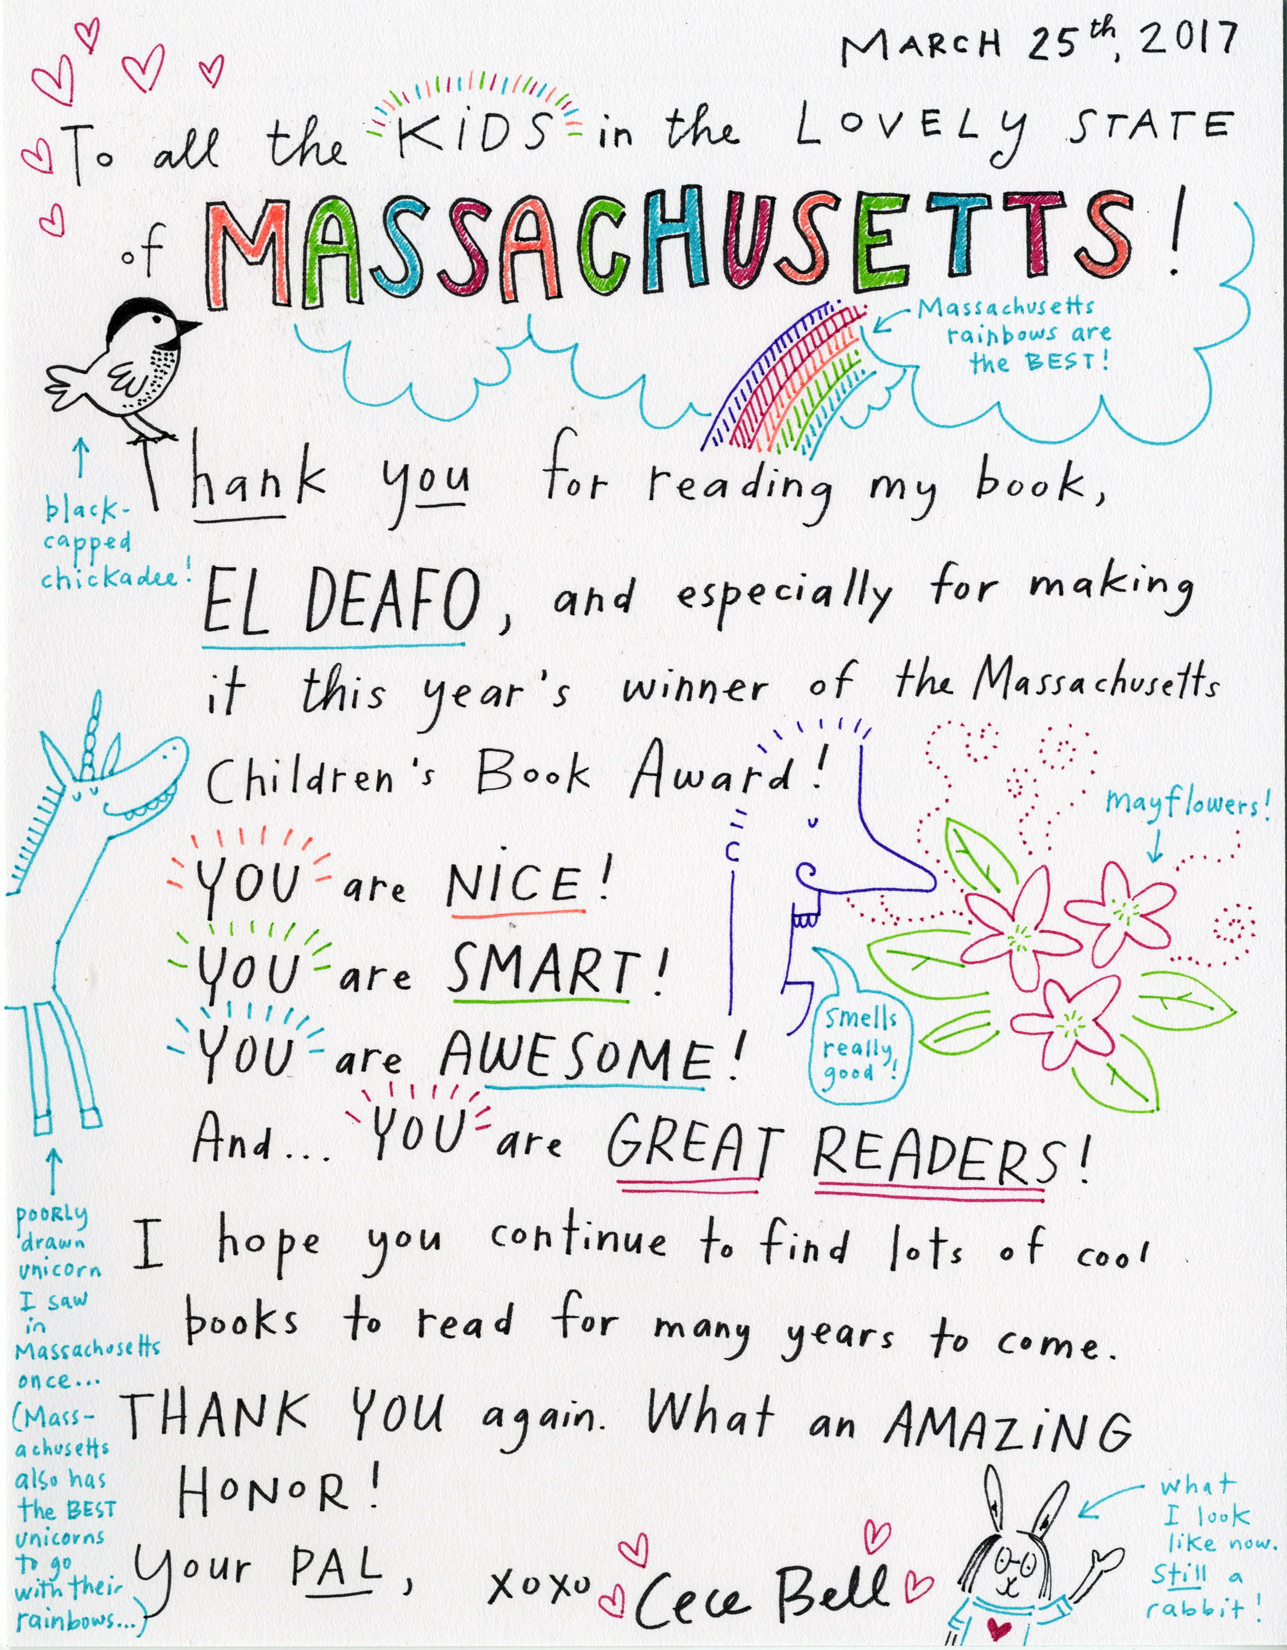 The illustrated letter reads: March 25th, 2017. To all the kids in the lovely state of Massachusetts! Thank you for reading my book El Deafo, and especially for making it this year's winner of the Massachusetts Children's Book Award! You are NICE! You are SMART! You are AWESOME! And... YOU are GREAT READERS! I hope you continue to find lots of cool books to read for many years to come. THANK YOU again. What an AMAZING HONOR! Your PAL, XOXO Cece Bell